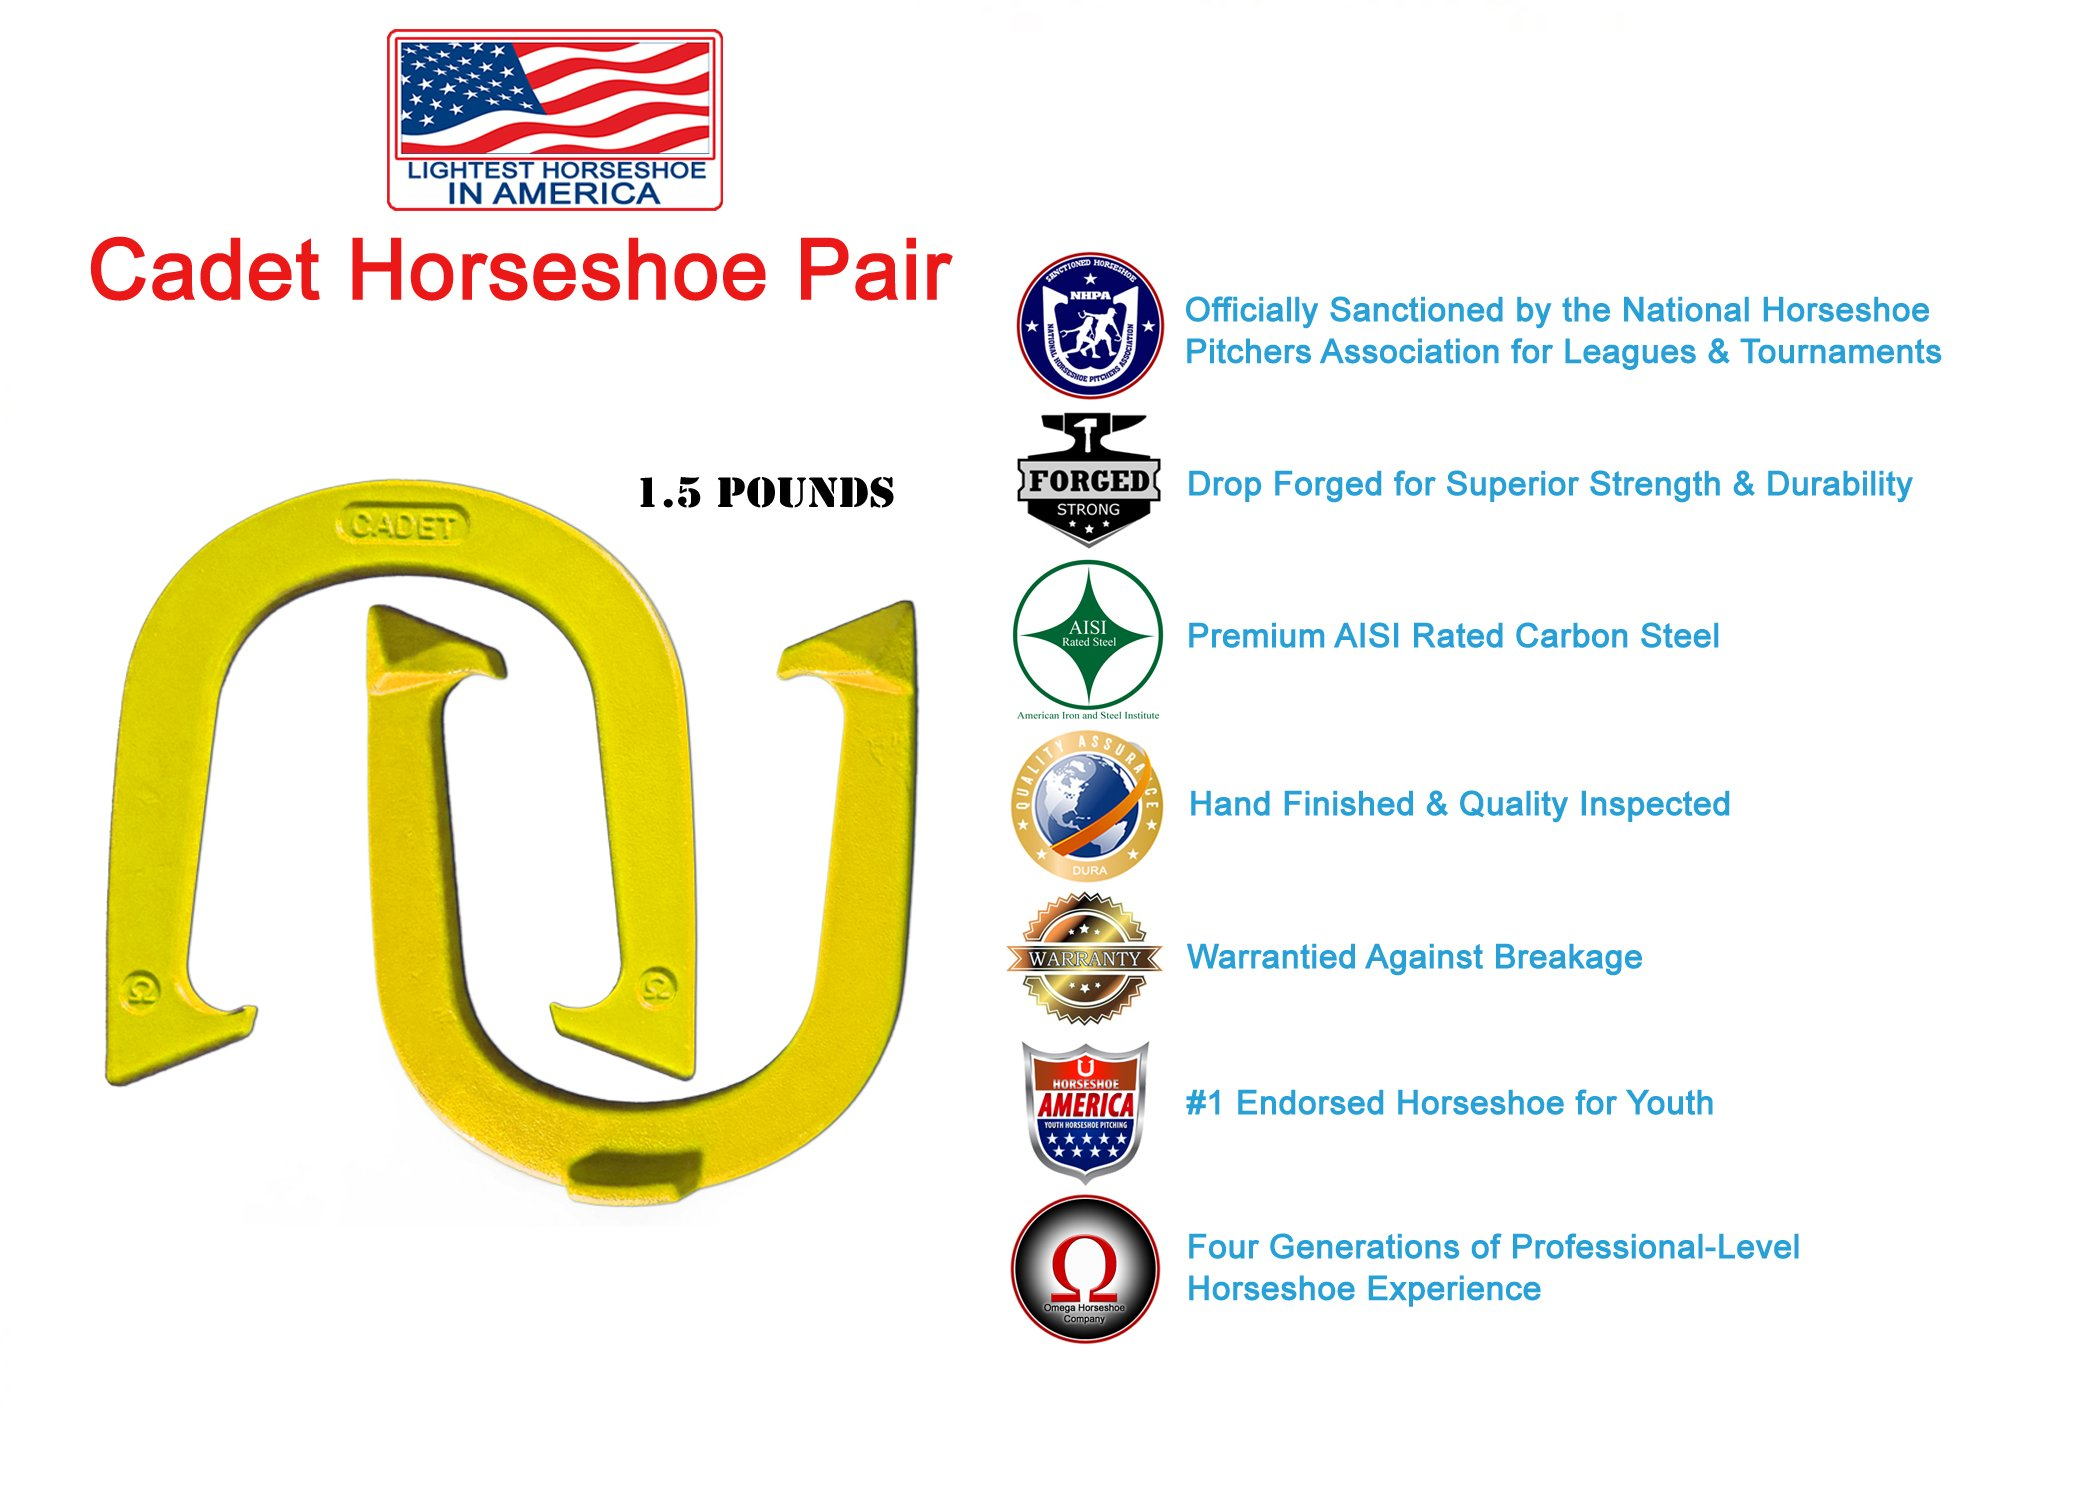 Light Weight ''Cadet'' Pitching Horseshoes - Yellow Finish - NHPA Sanctioned for Tournament Play - Drop Forged Steel - One Pair (2 Shoes)